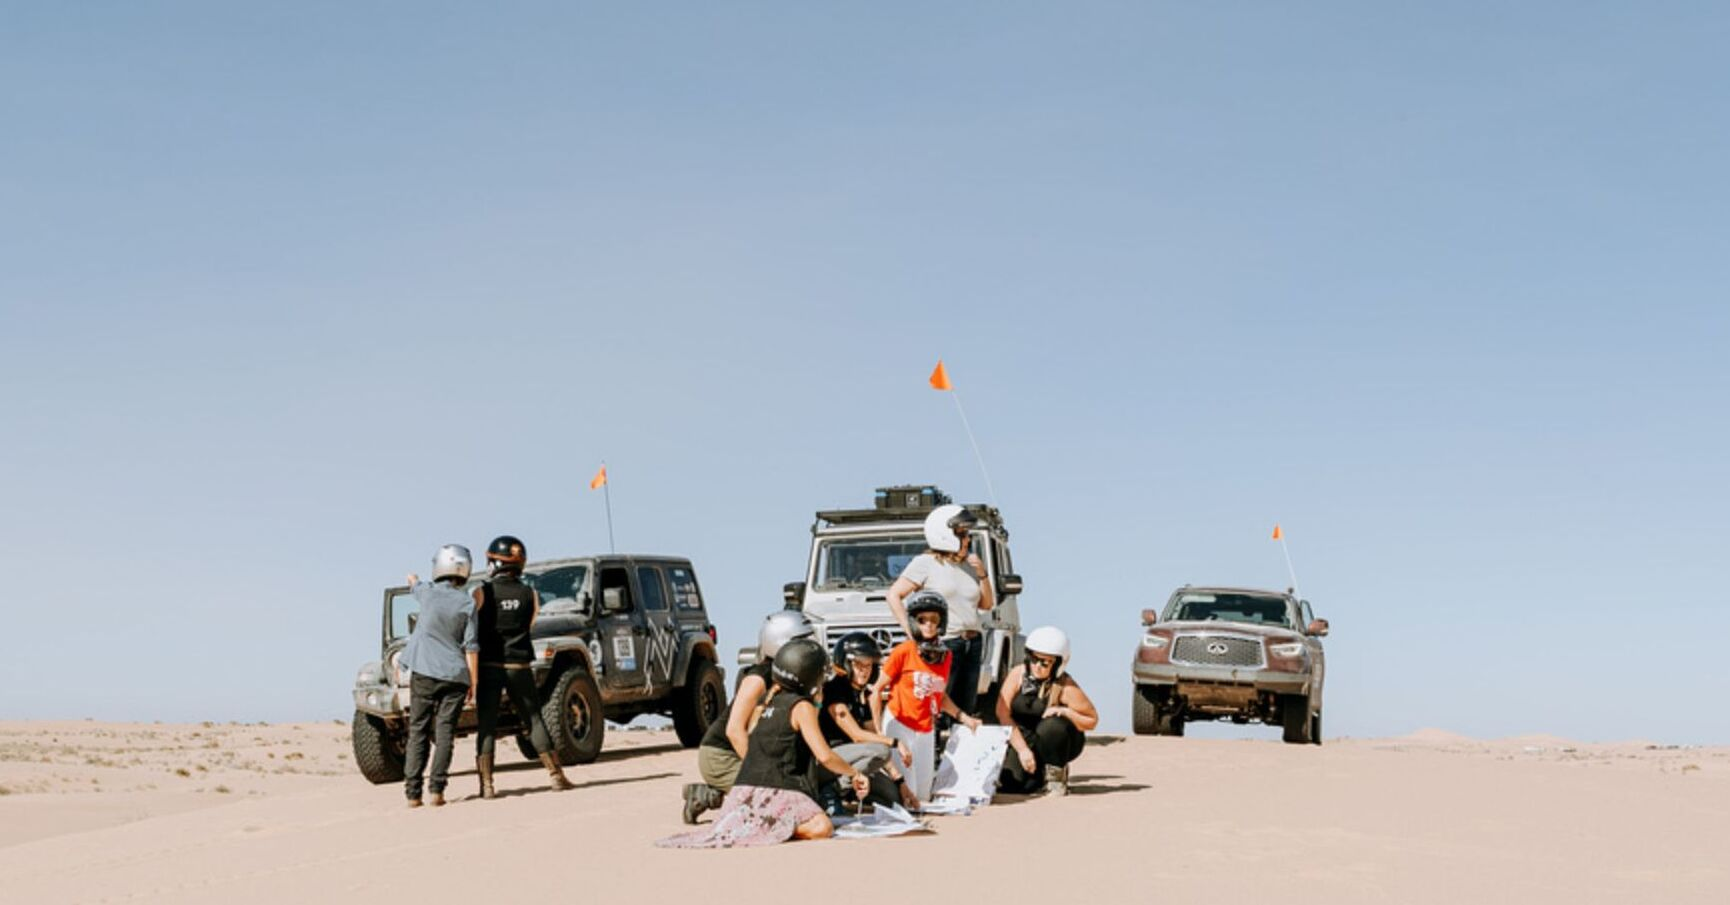 Rebelle Rally competitors navigate through sand dunes.